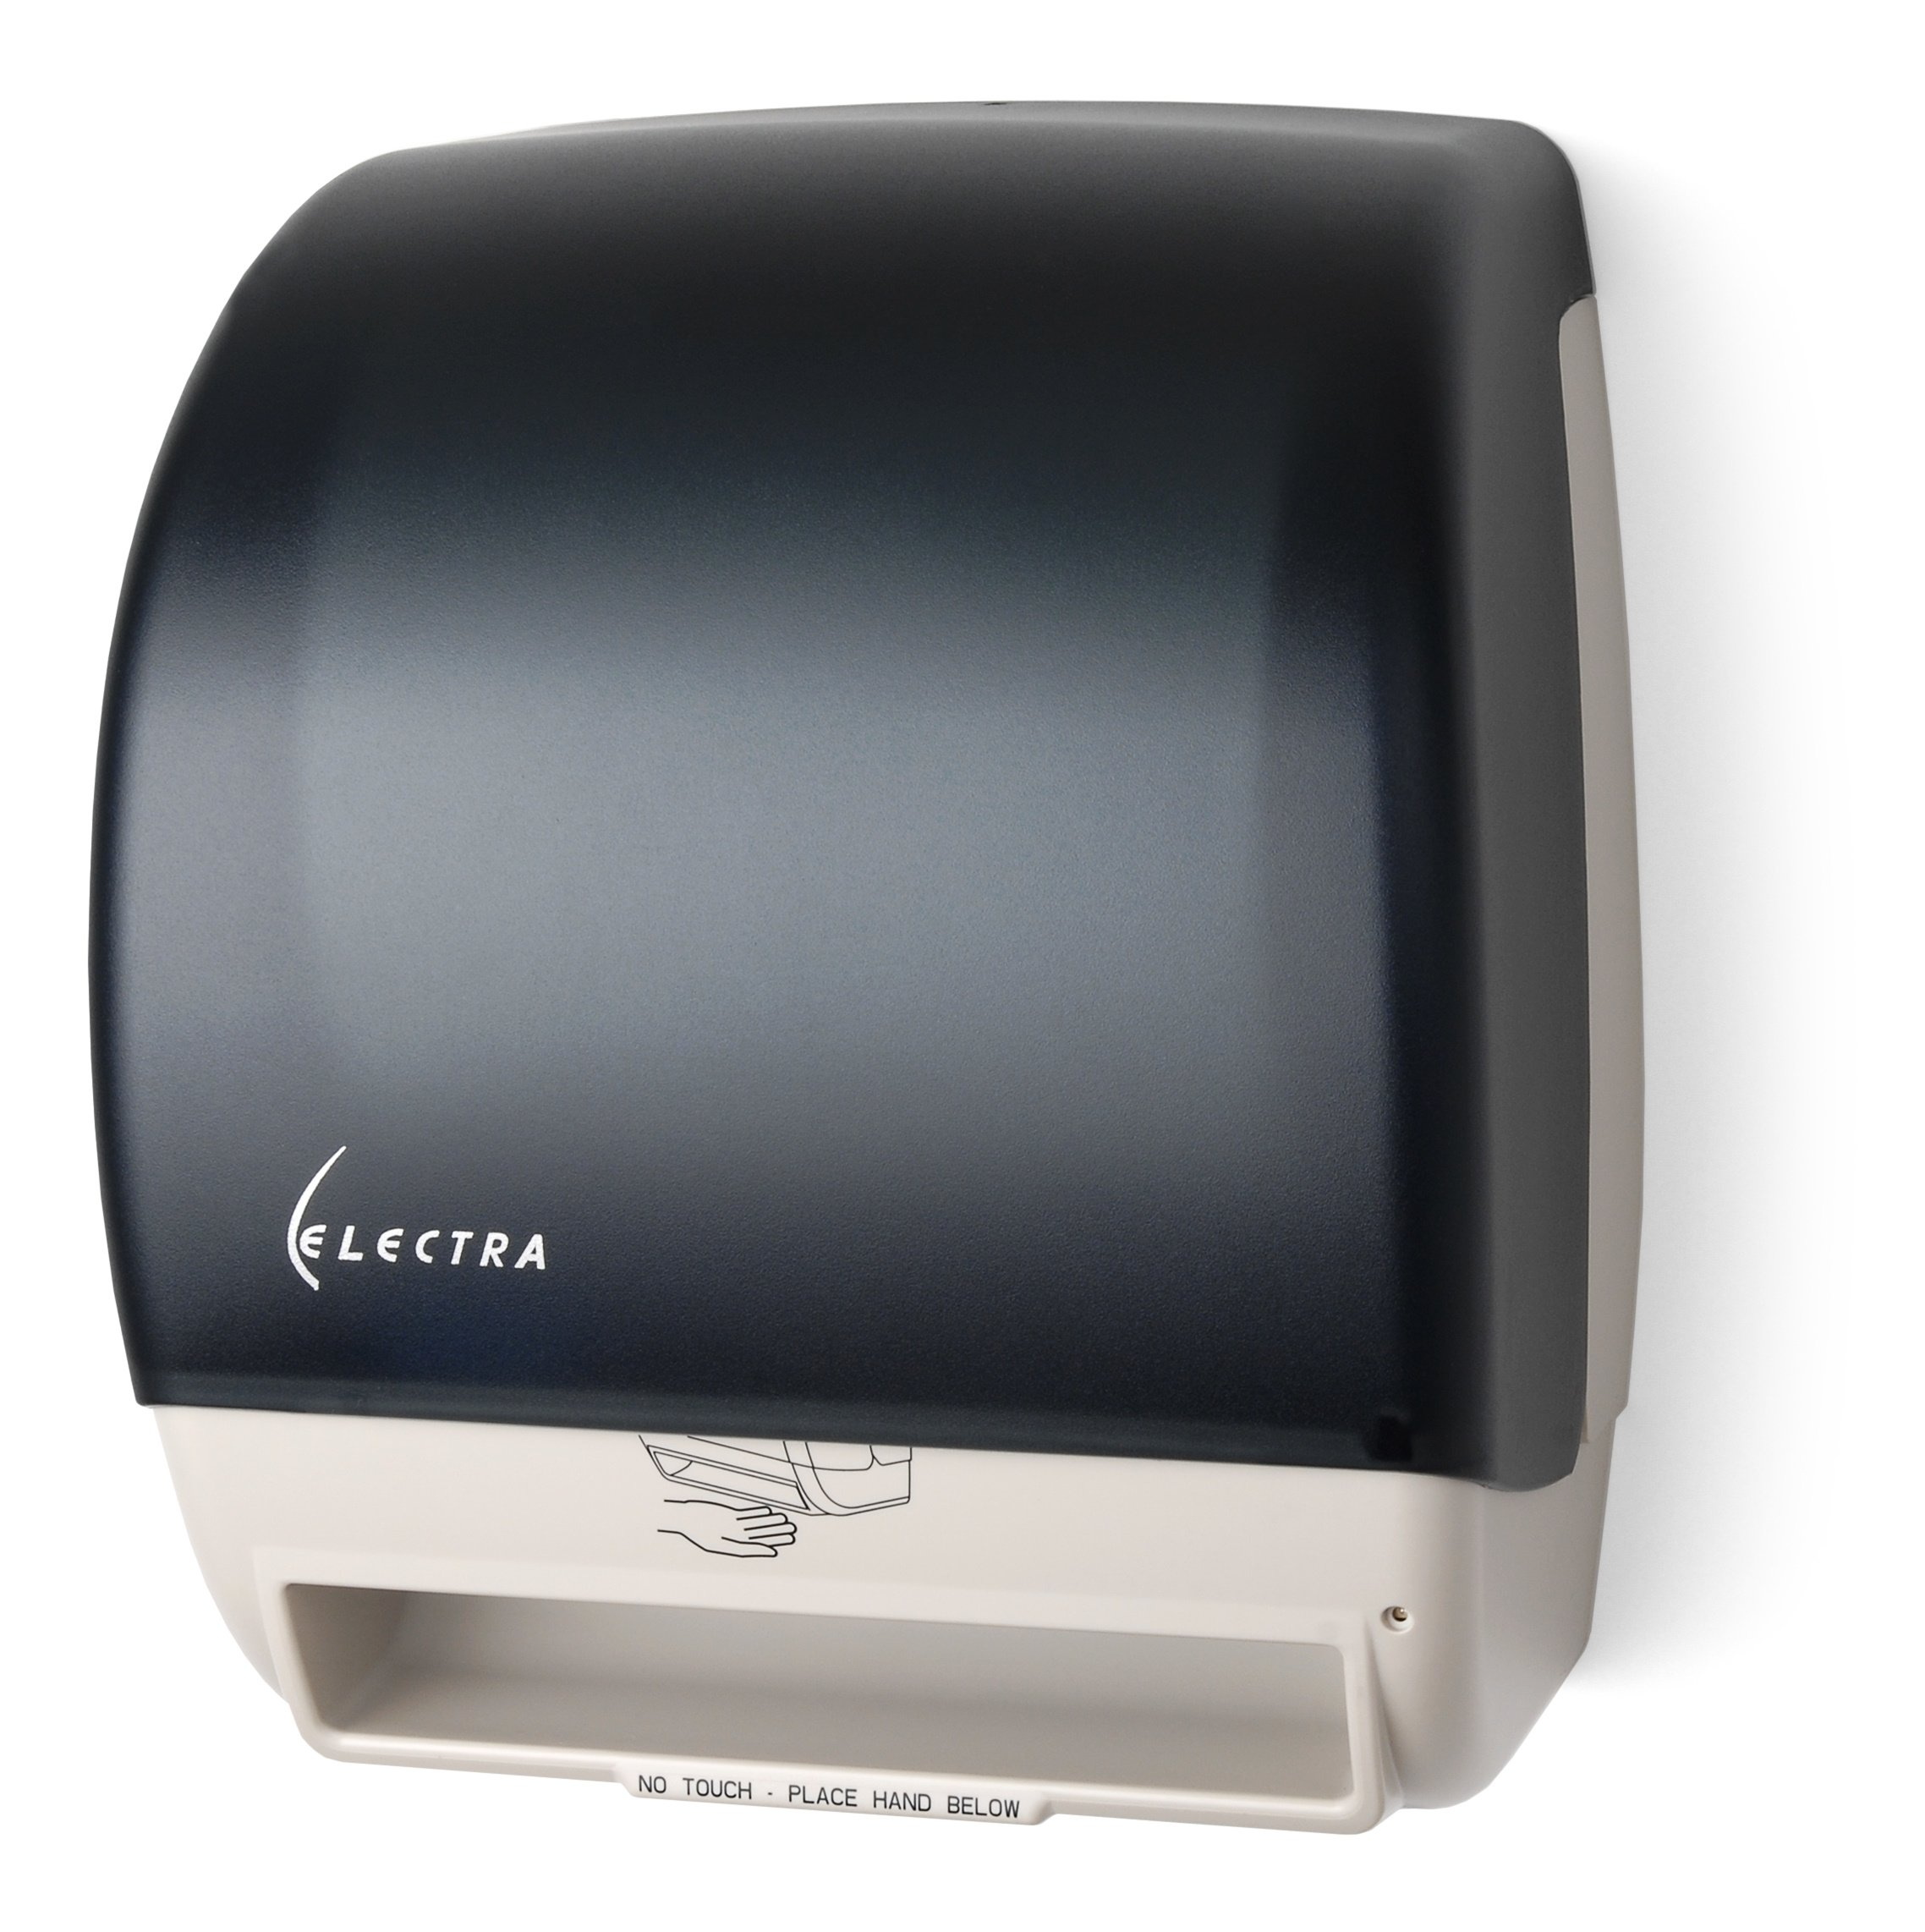 Palmer Fixture TD0246-01 Electra AC Touchless Roll Towel Dispenser, Dark Translucent